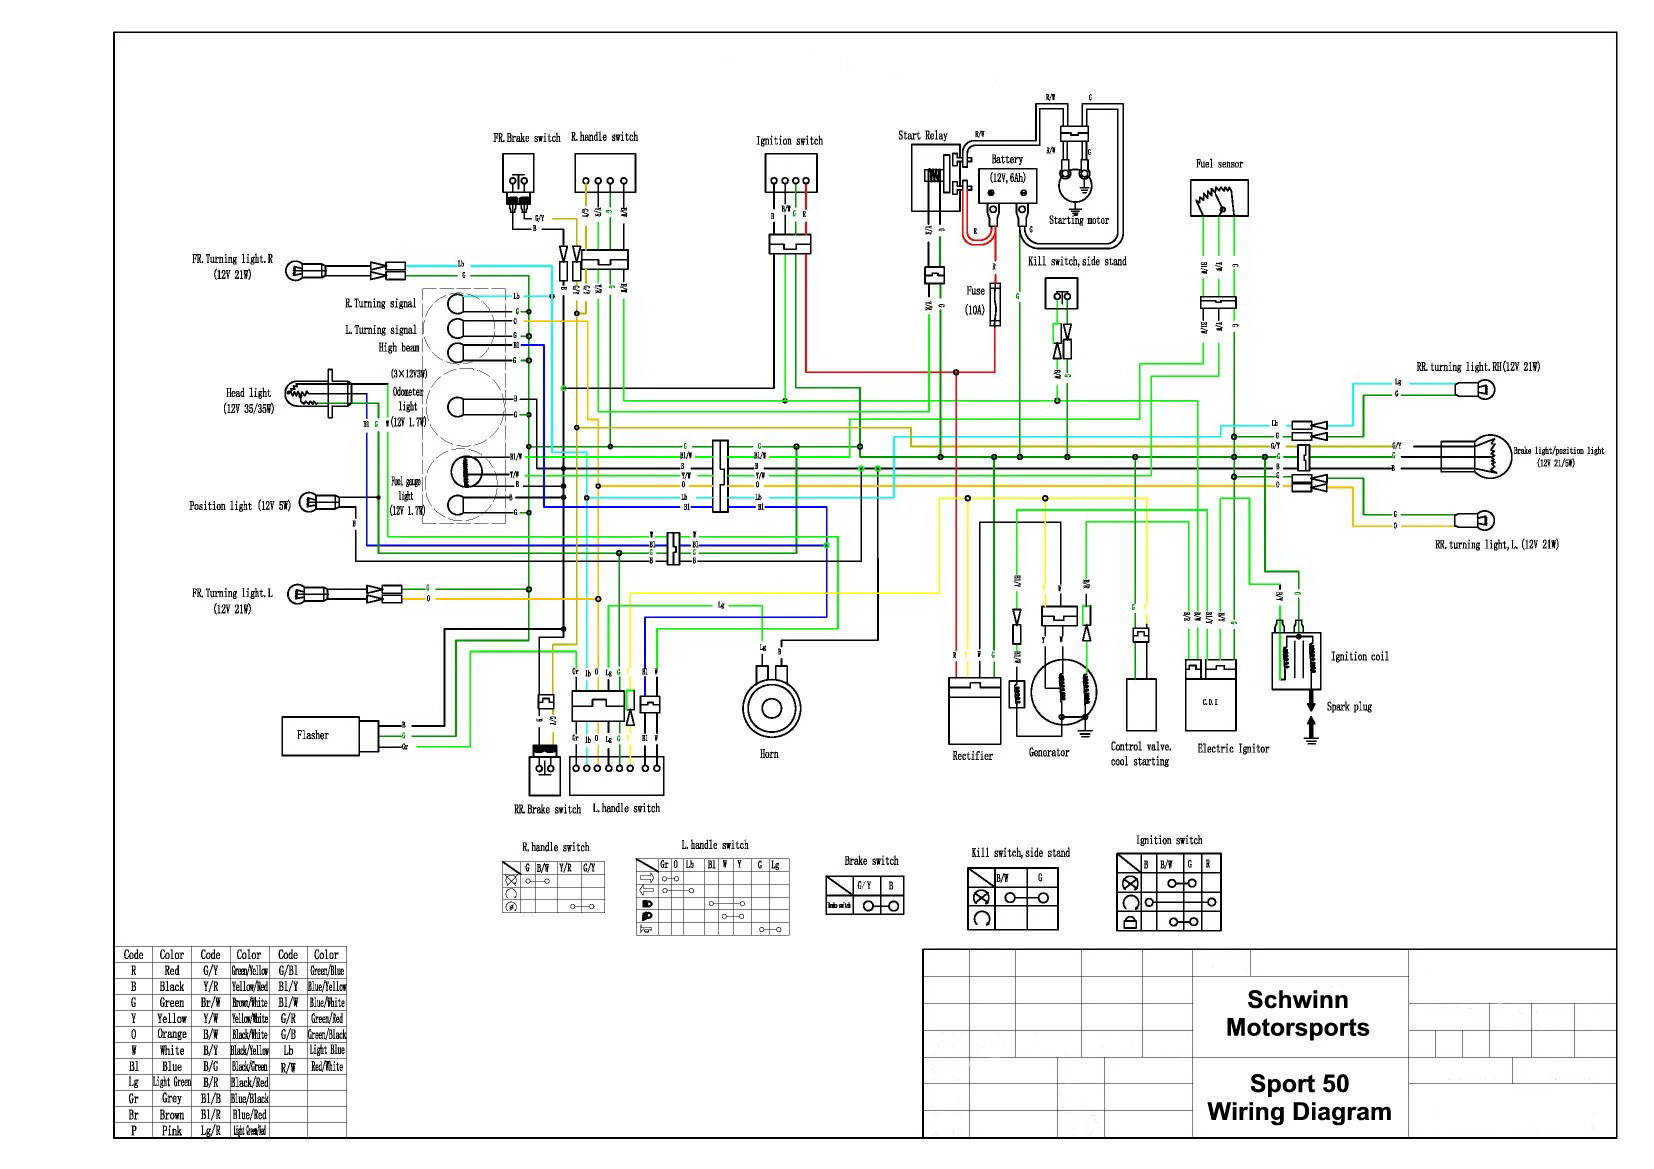 pride mobility scooter wiring diagram Download-Victory Trailer Wiring Diagram Best Pride Mobility Victory Scooter Wiring Diagram Wiring Solutions 19-j